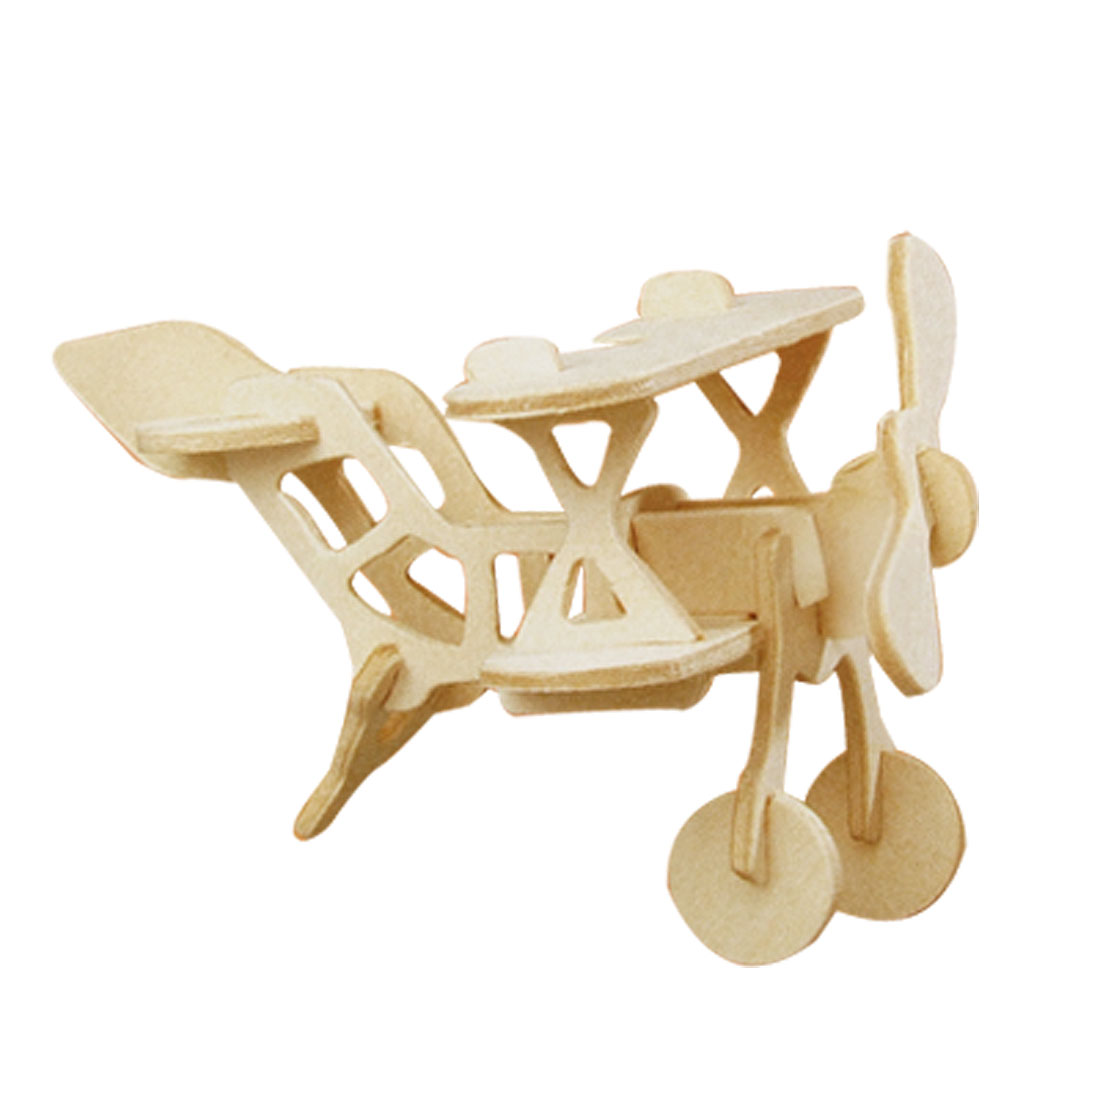 Child Intelligence Assemble Bi-plane Wooden Model Kit